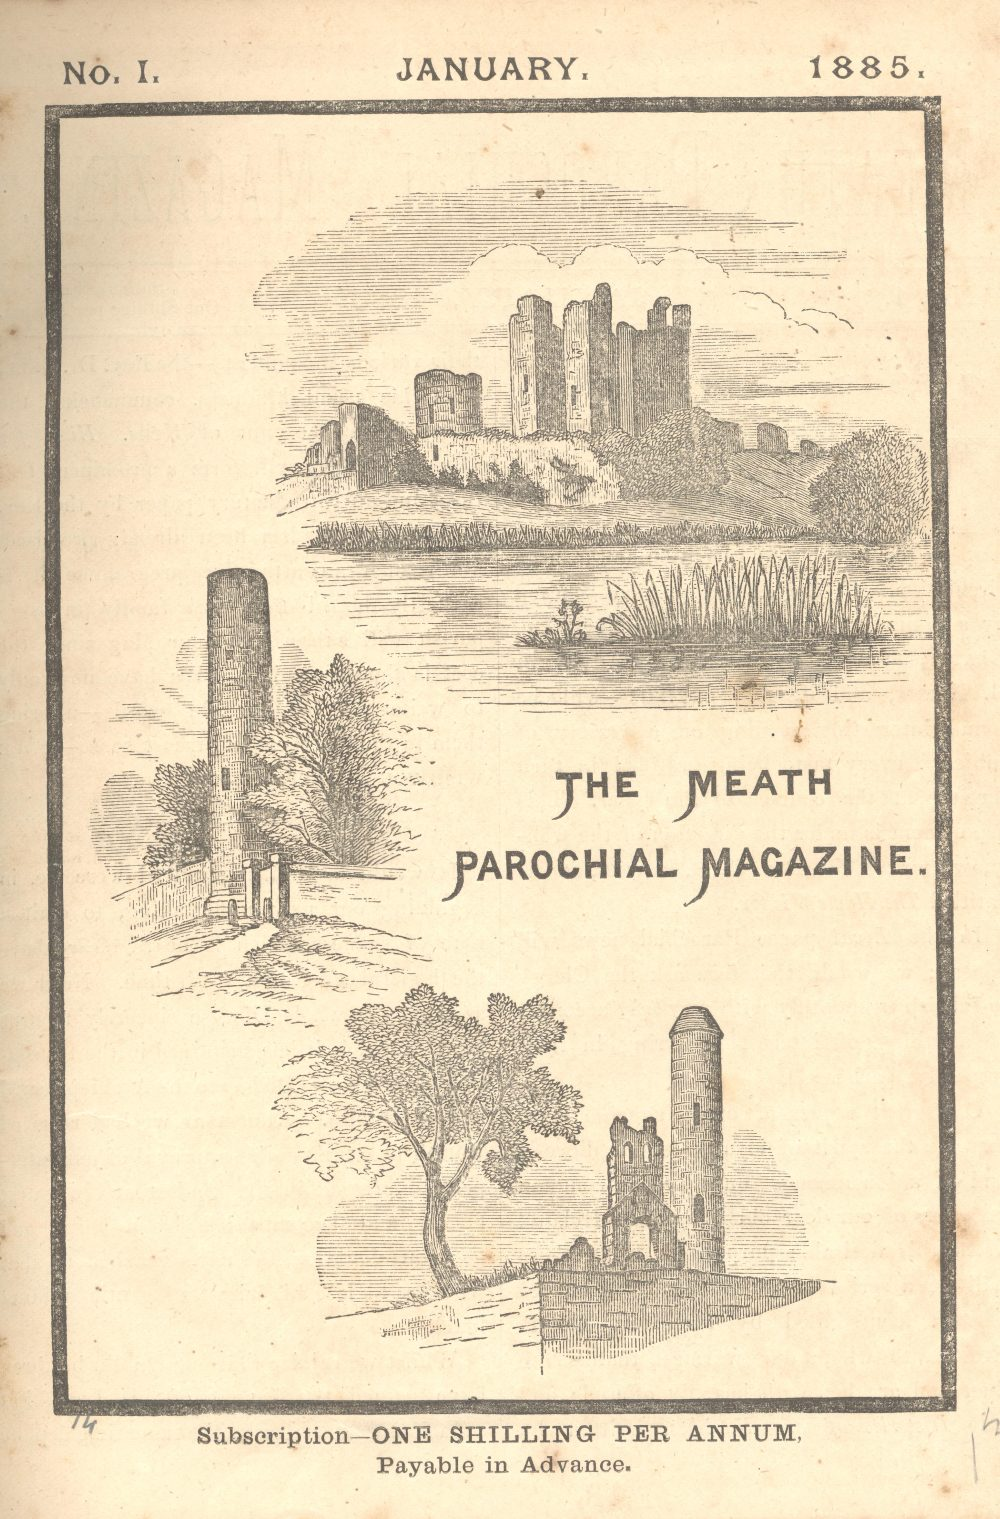 First volume of the Meath Parochial Magazine, 1885, RCB Library D7/17/1.1